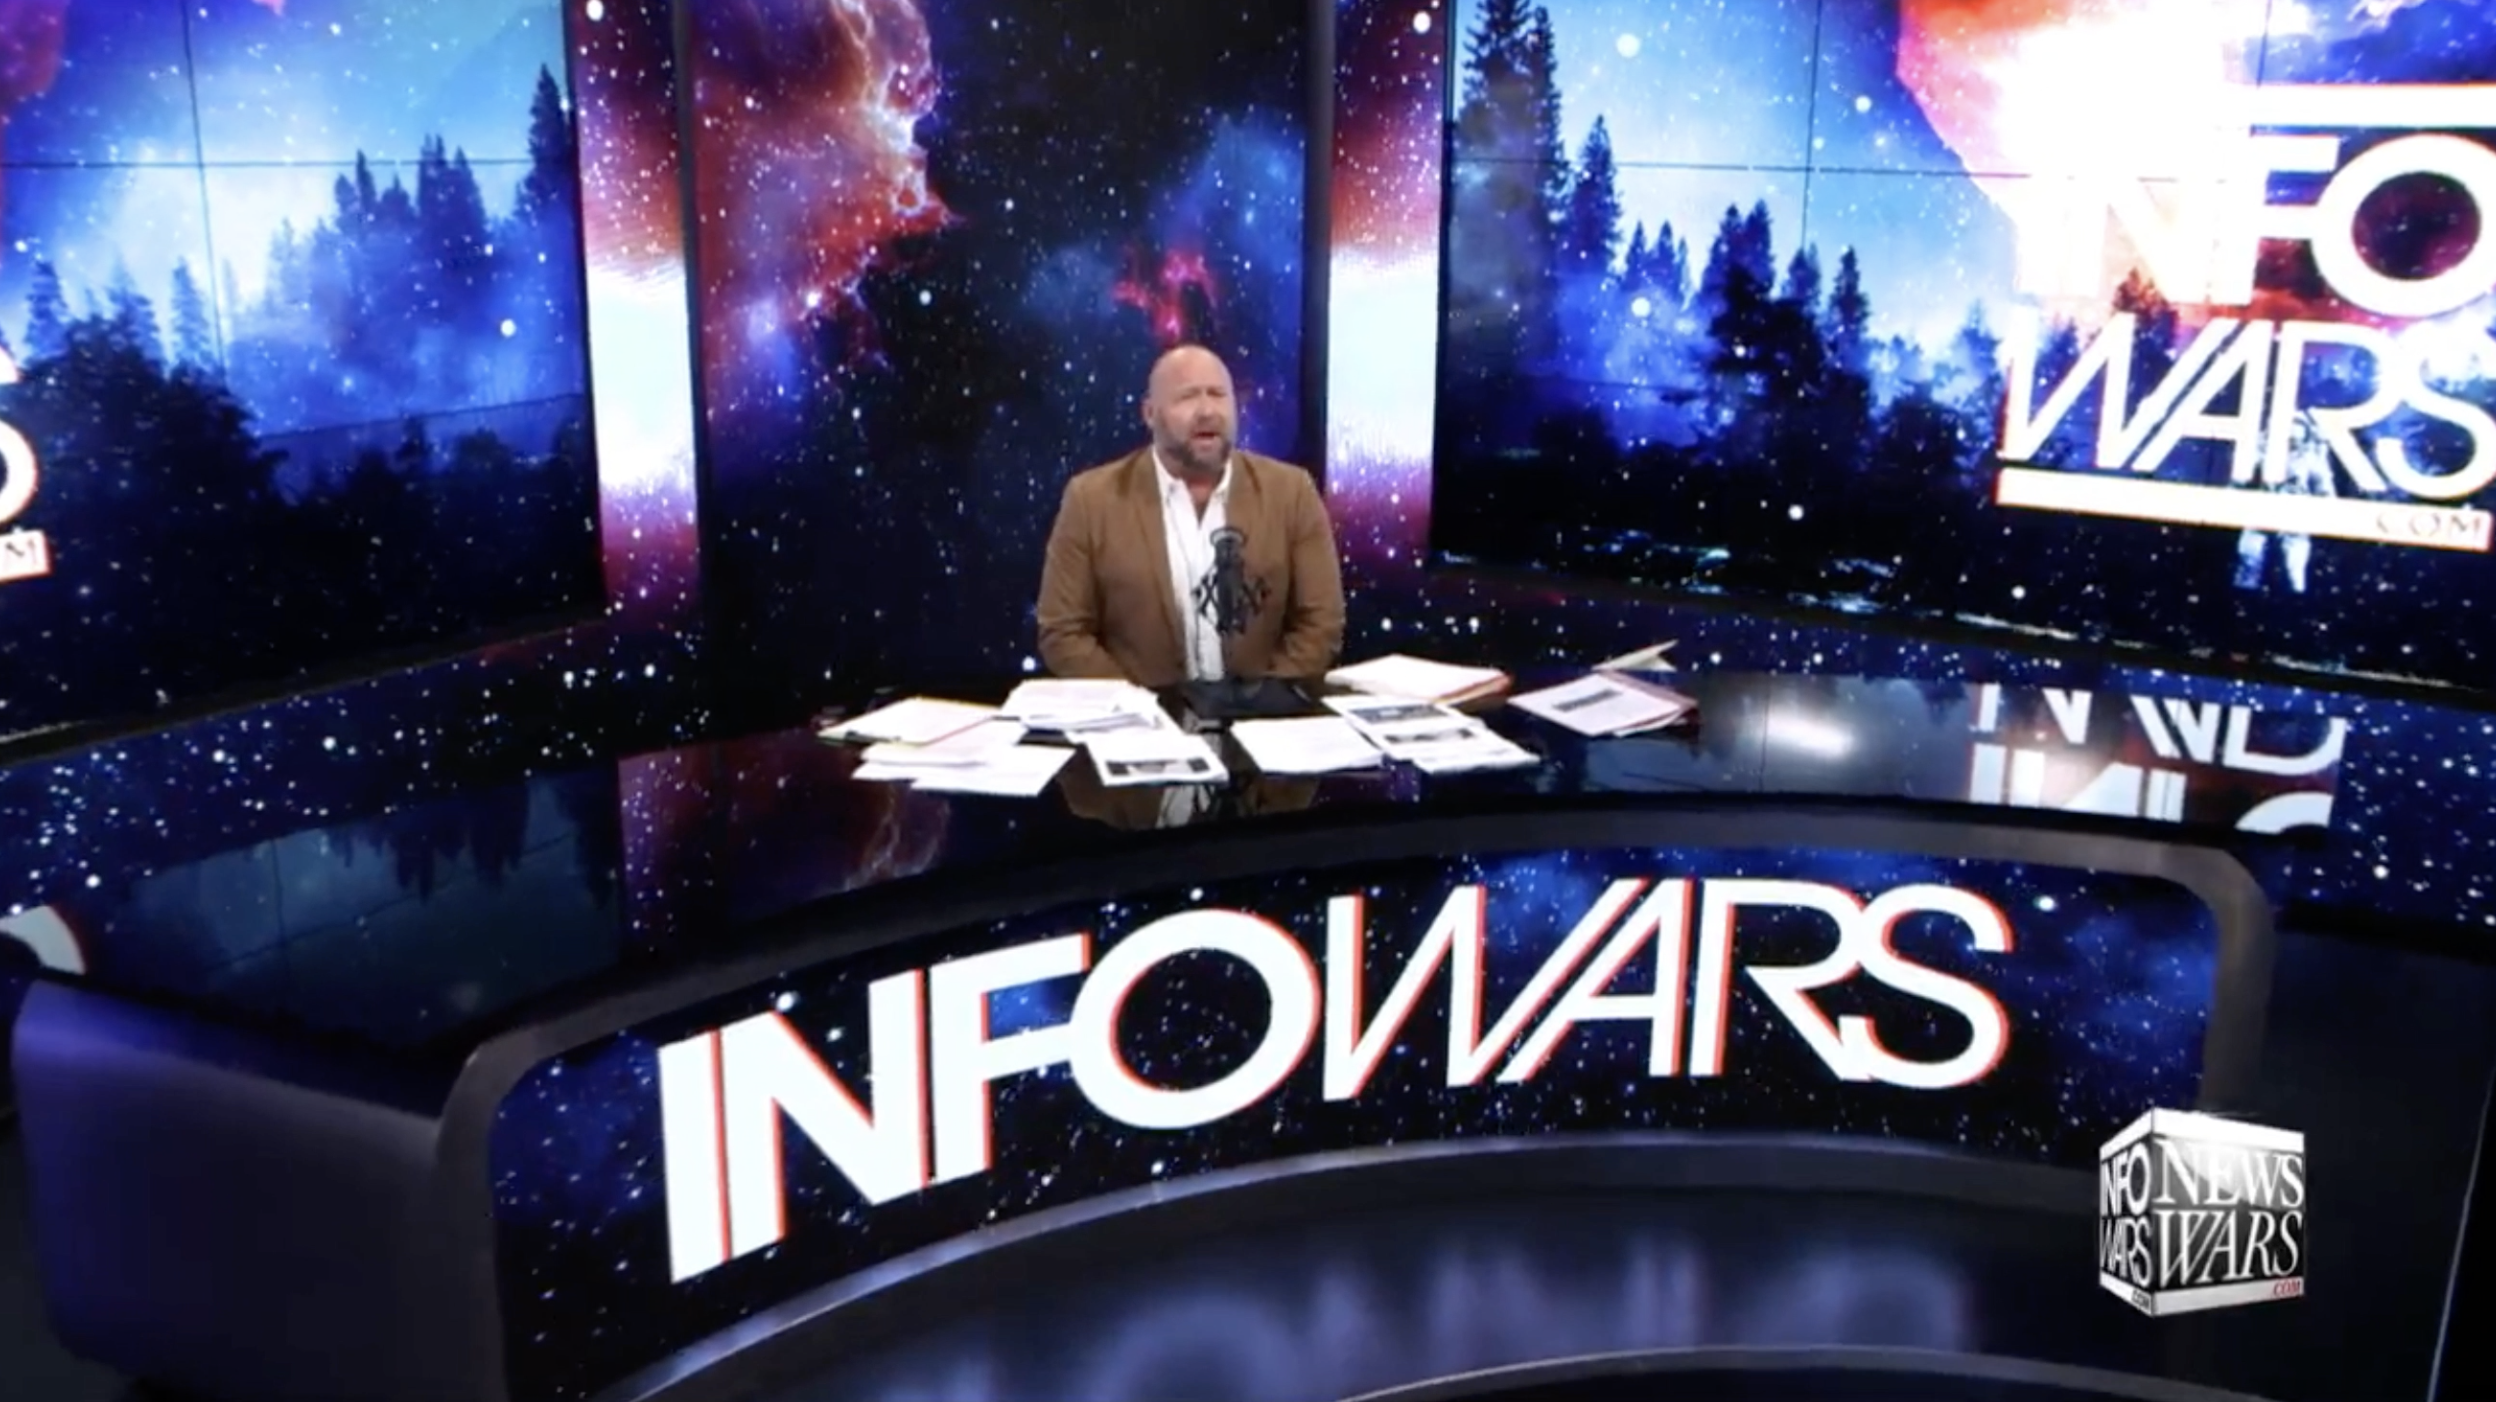 Alex Jones Infowars 3 12 2020